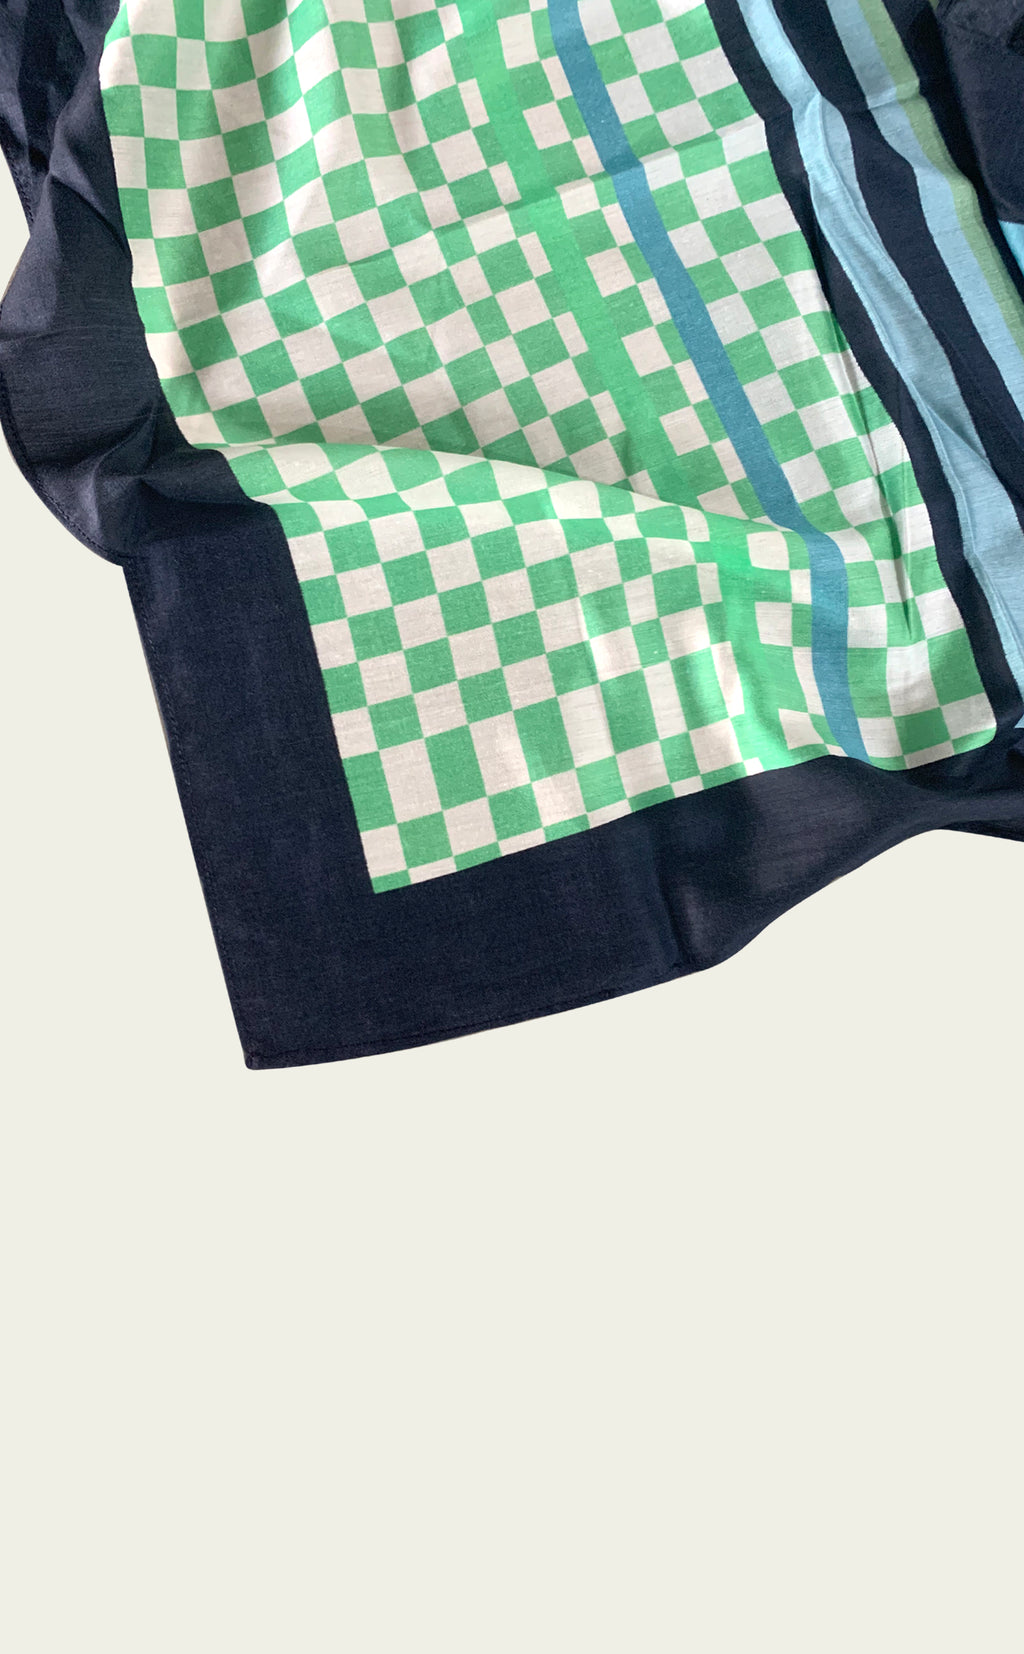 Mint Patterned Bandana